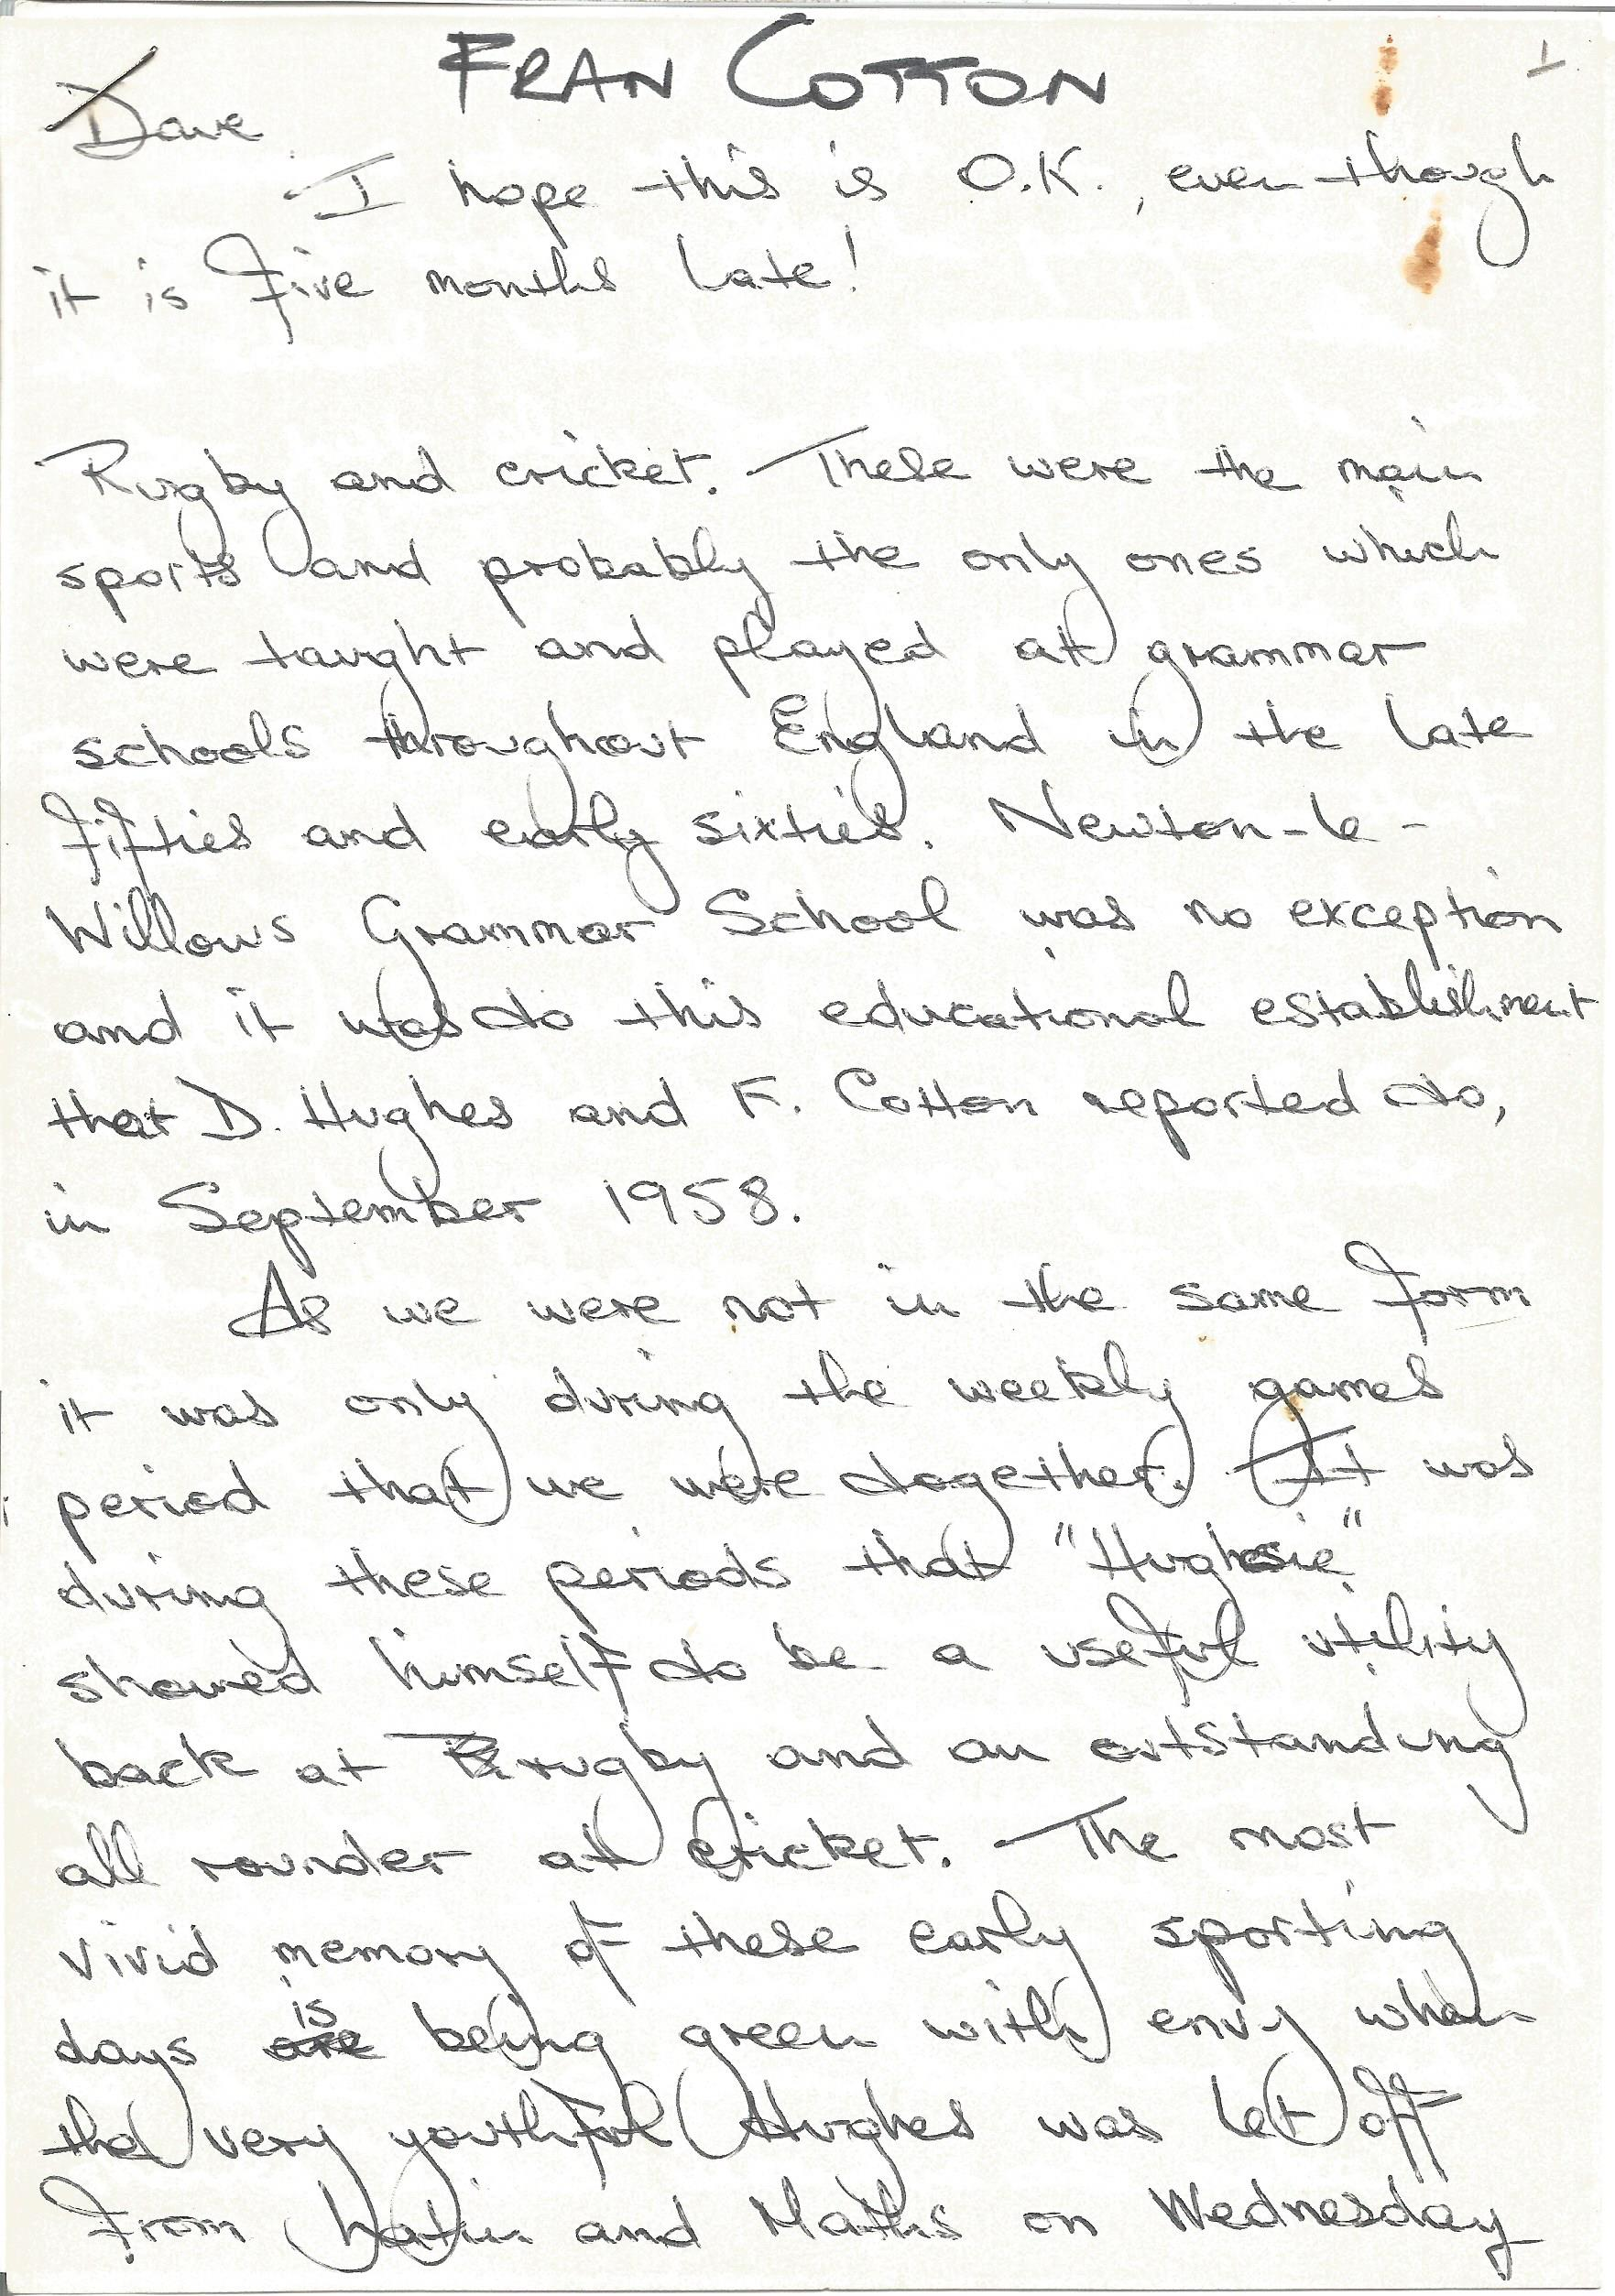 Rugby Player Fran Cotton, 3-page handwritten article for the testimonial brochure of Lancashire